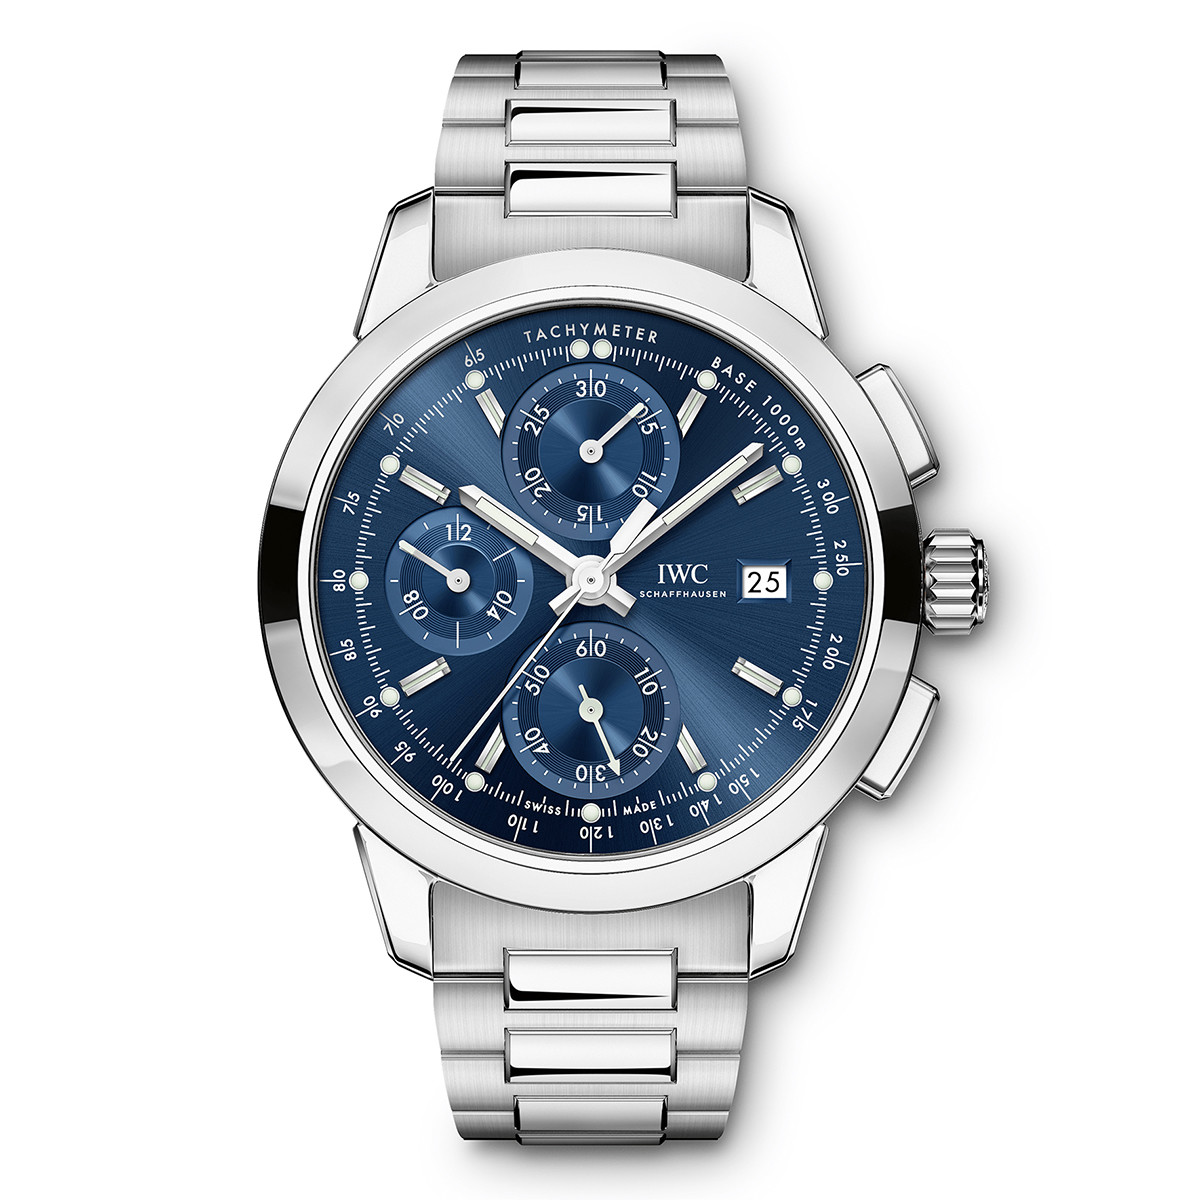 Ingenieur Chronograph Steel (IW380802)